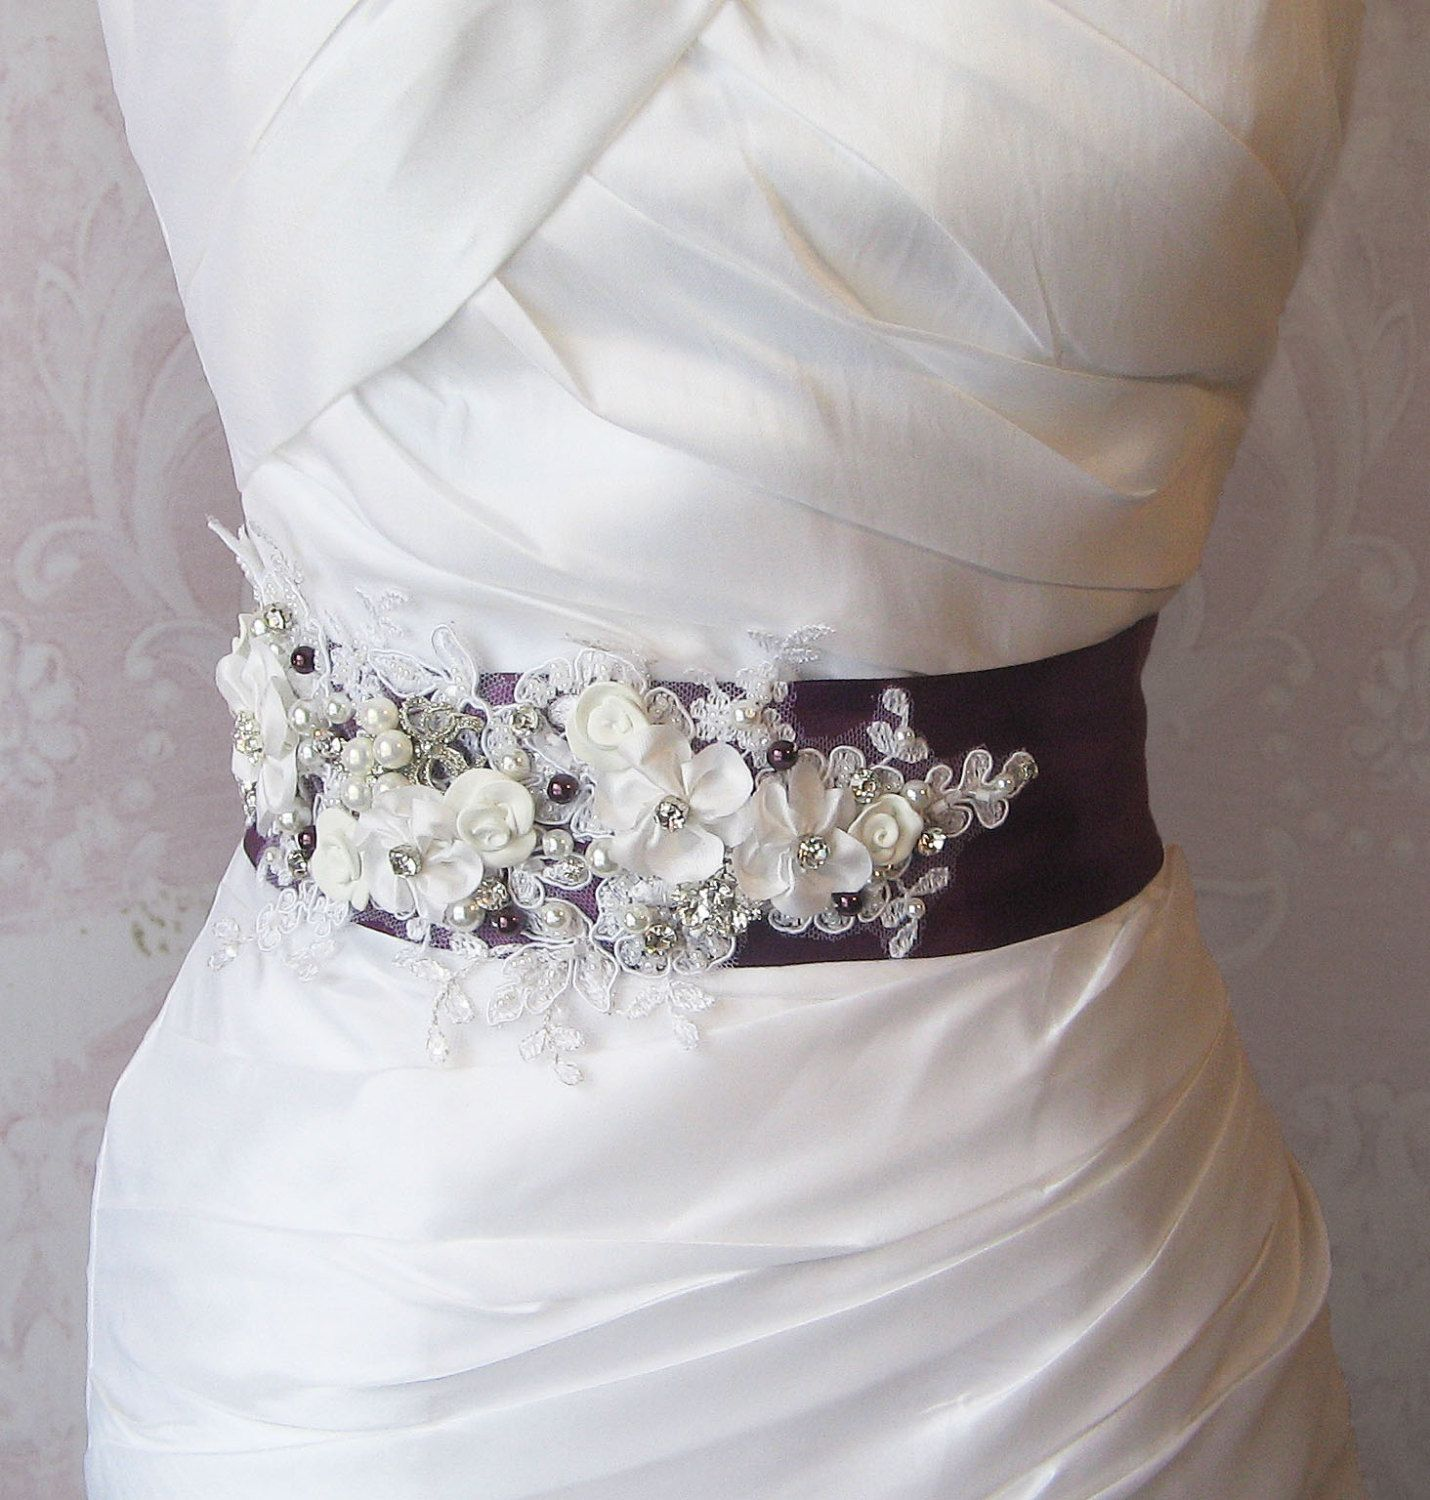 wedding sash Eggplant Purple Sash Deep Plum and White Bridal Sash Wedding Belt Rhinestone and